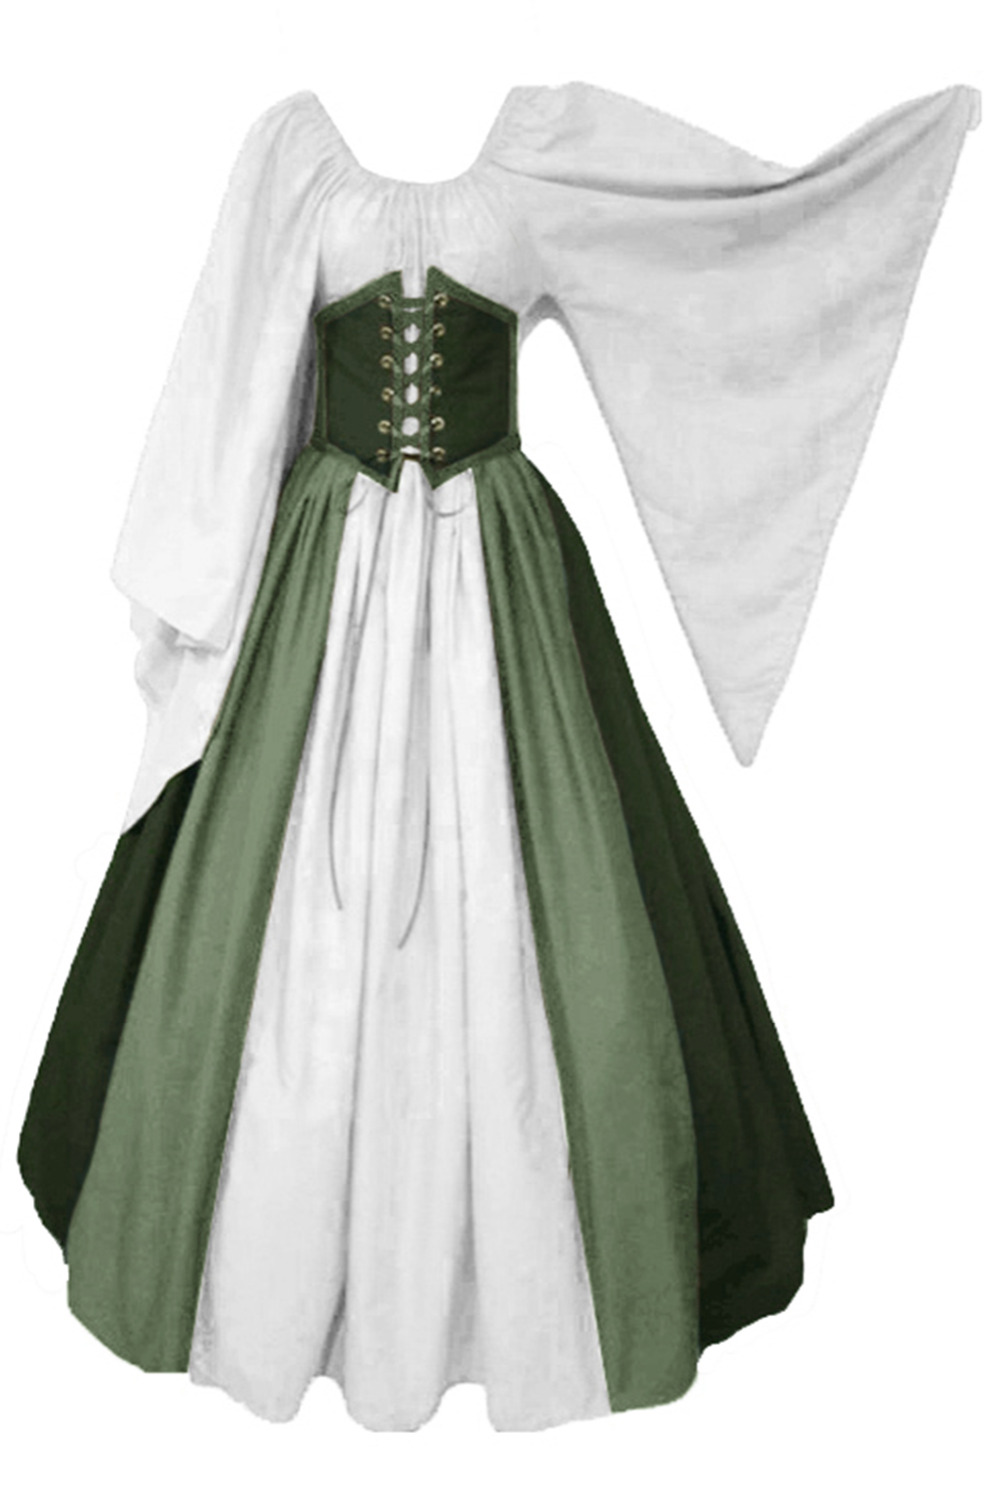 Green Pirate Dress Medieval Renaissance Dress Gothic Victorian Ball Gown Halloween Costume